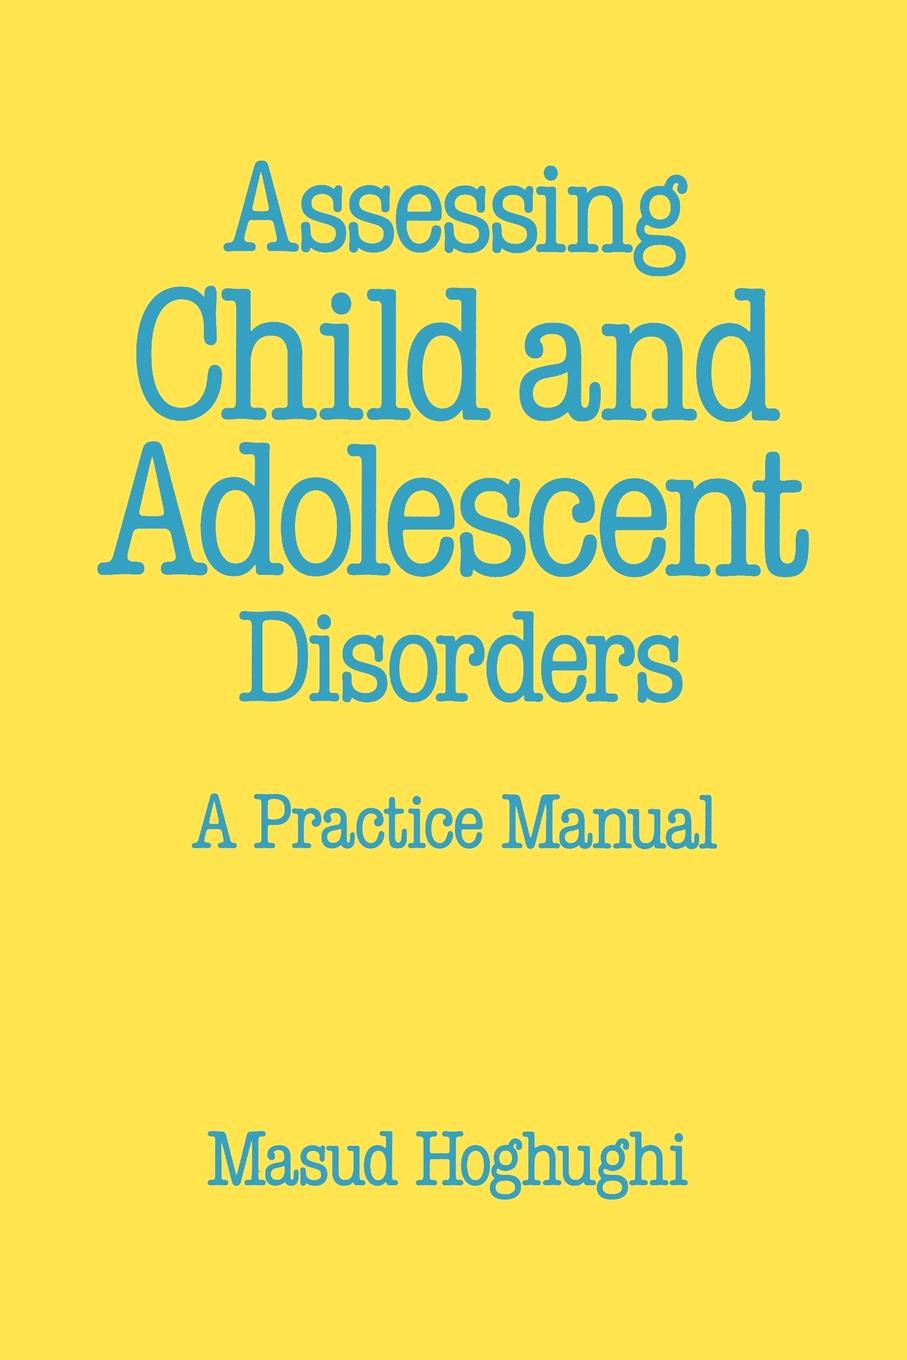 Masud Hoghughi, M. Hoghughi, Masud S. Hoghughi Assessing Child and Adolescent Disorders. A Practice Manual theodore beauchaine p child and adolescent psychopathology